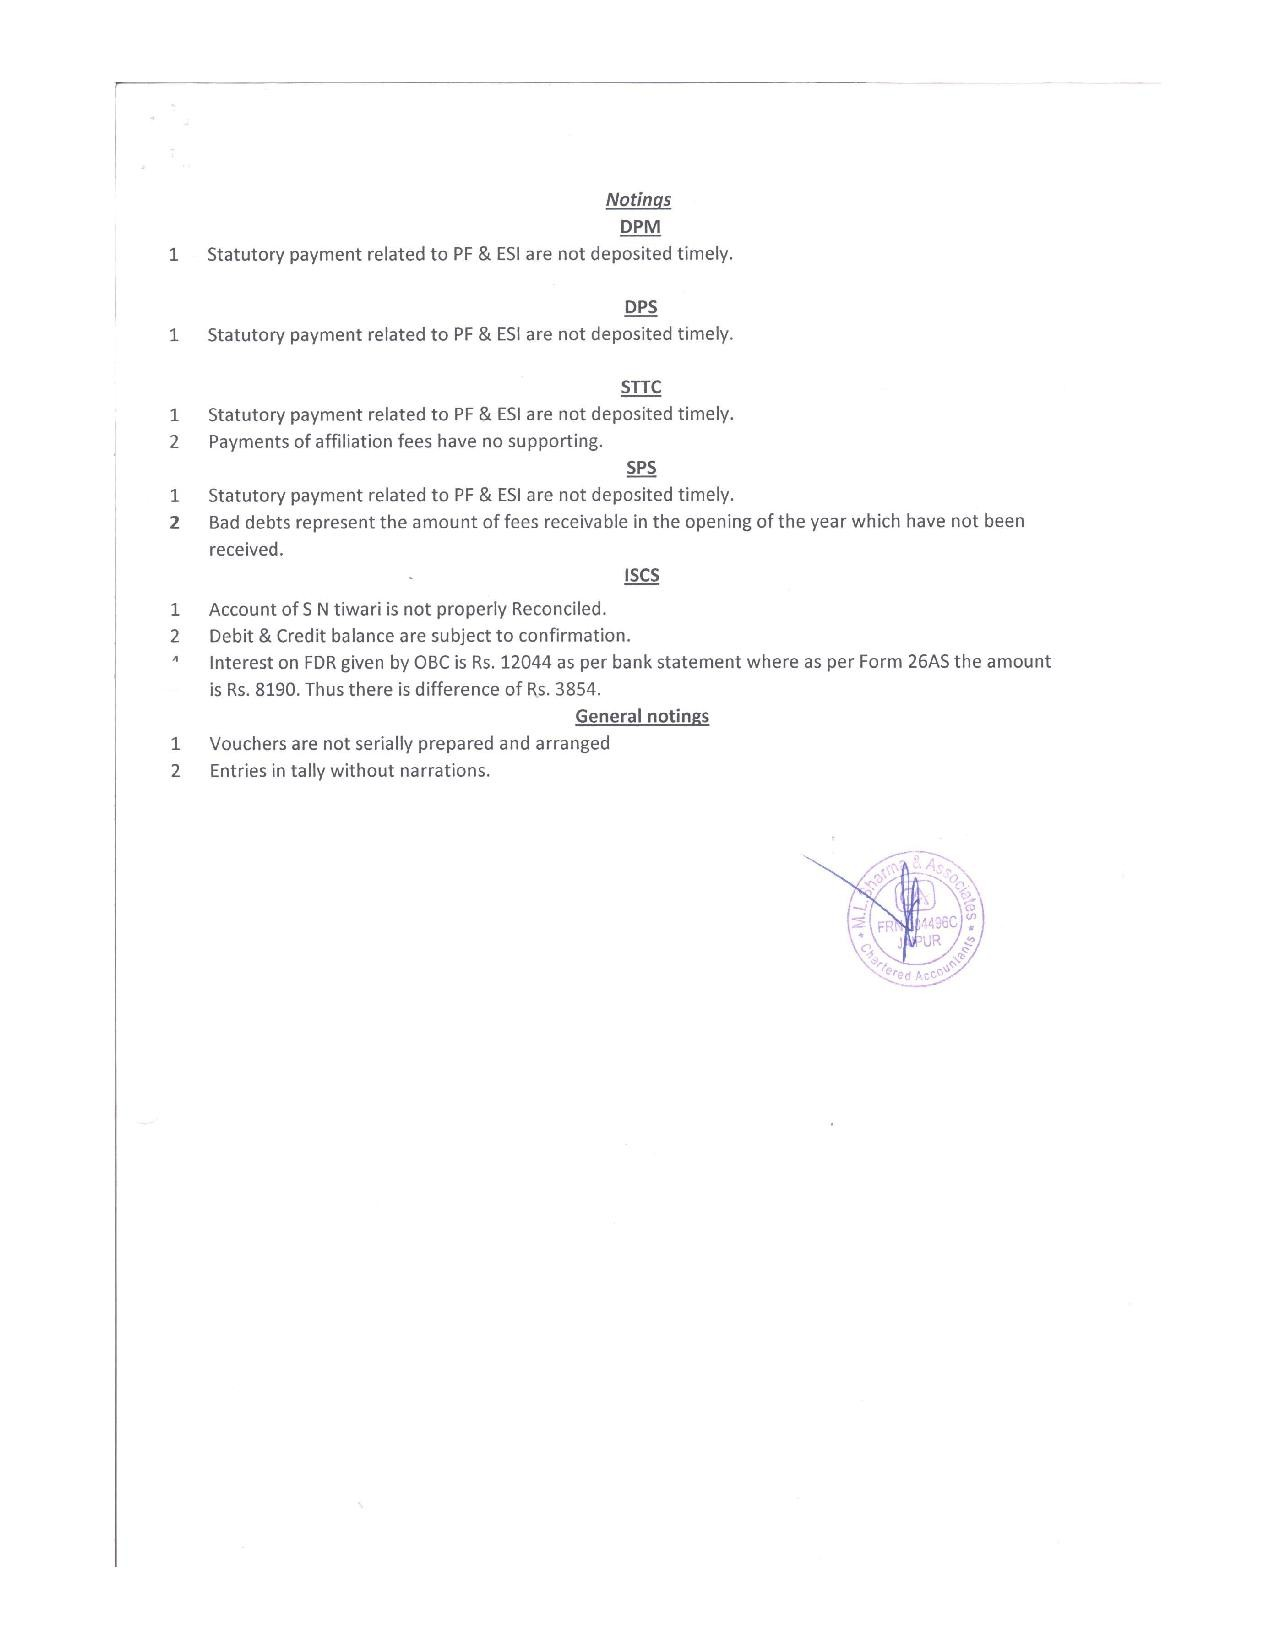 audit-report-financial-year-2015-16-page-016